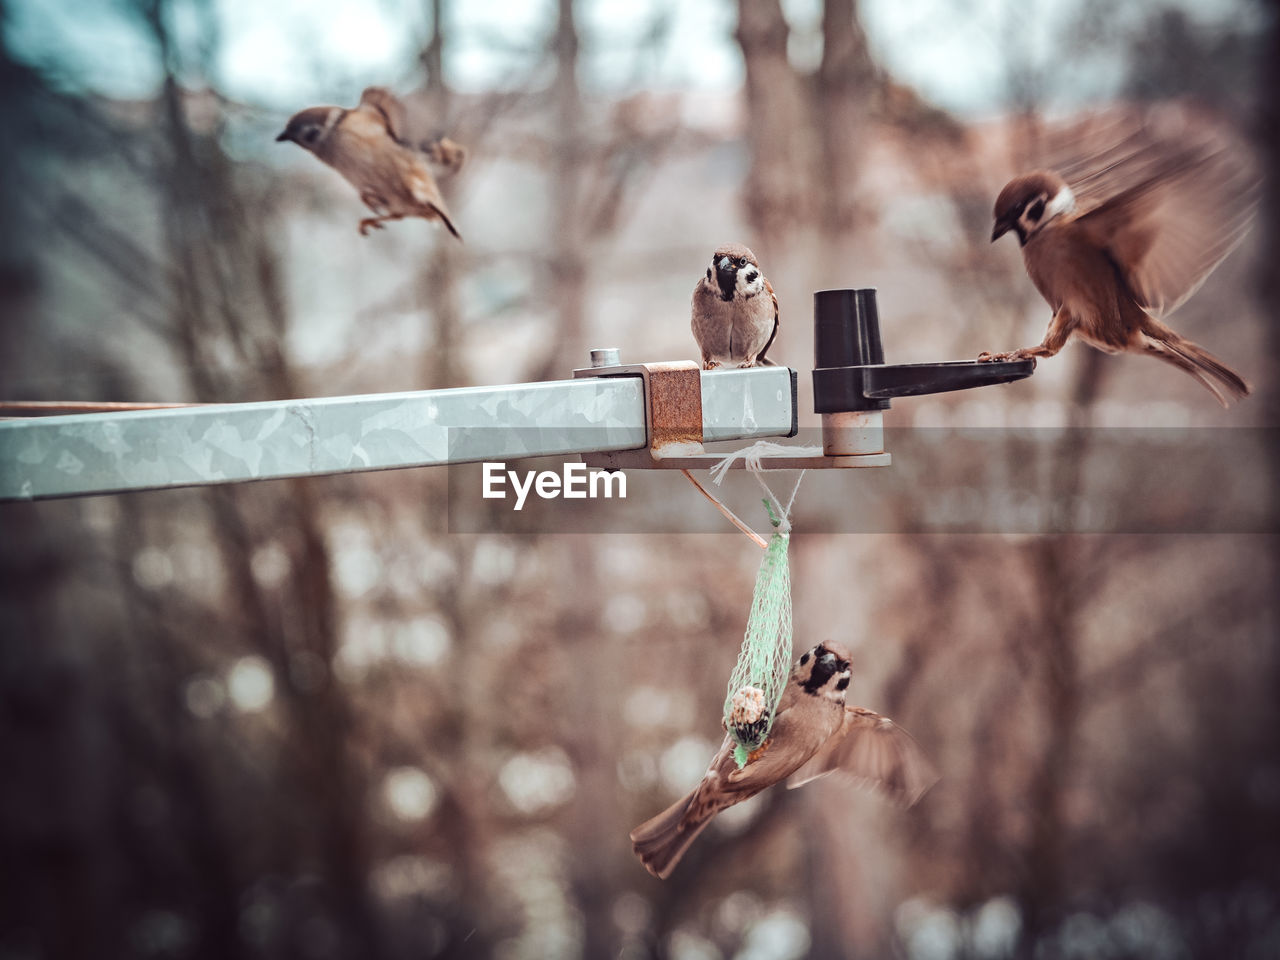 bird, vertebrate, animal, animals in the wild, animal themes, animal wildlife, group of animals, focus on foreground, tree, perching, no people, branch, day, nature, outdoors, selective focus, three animals, sparrow, plant